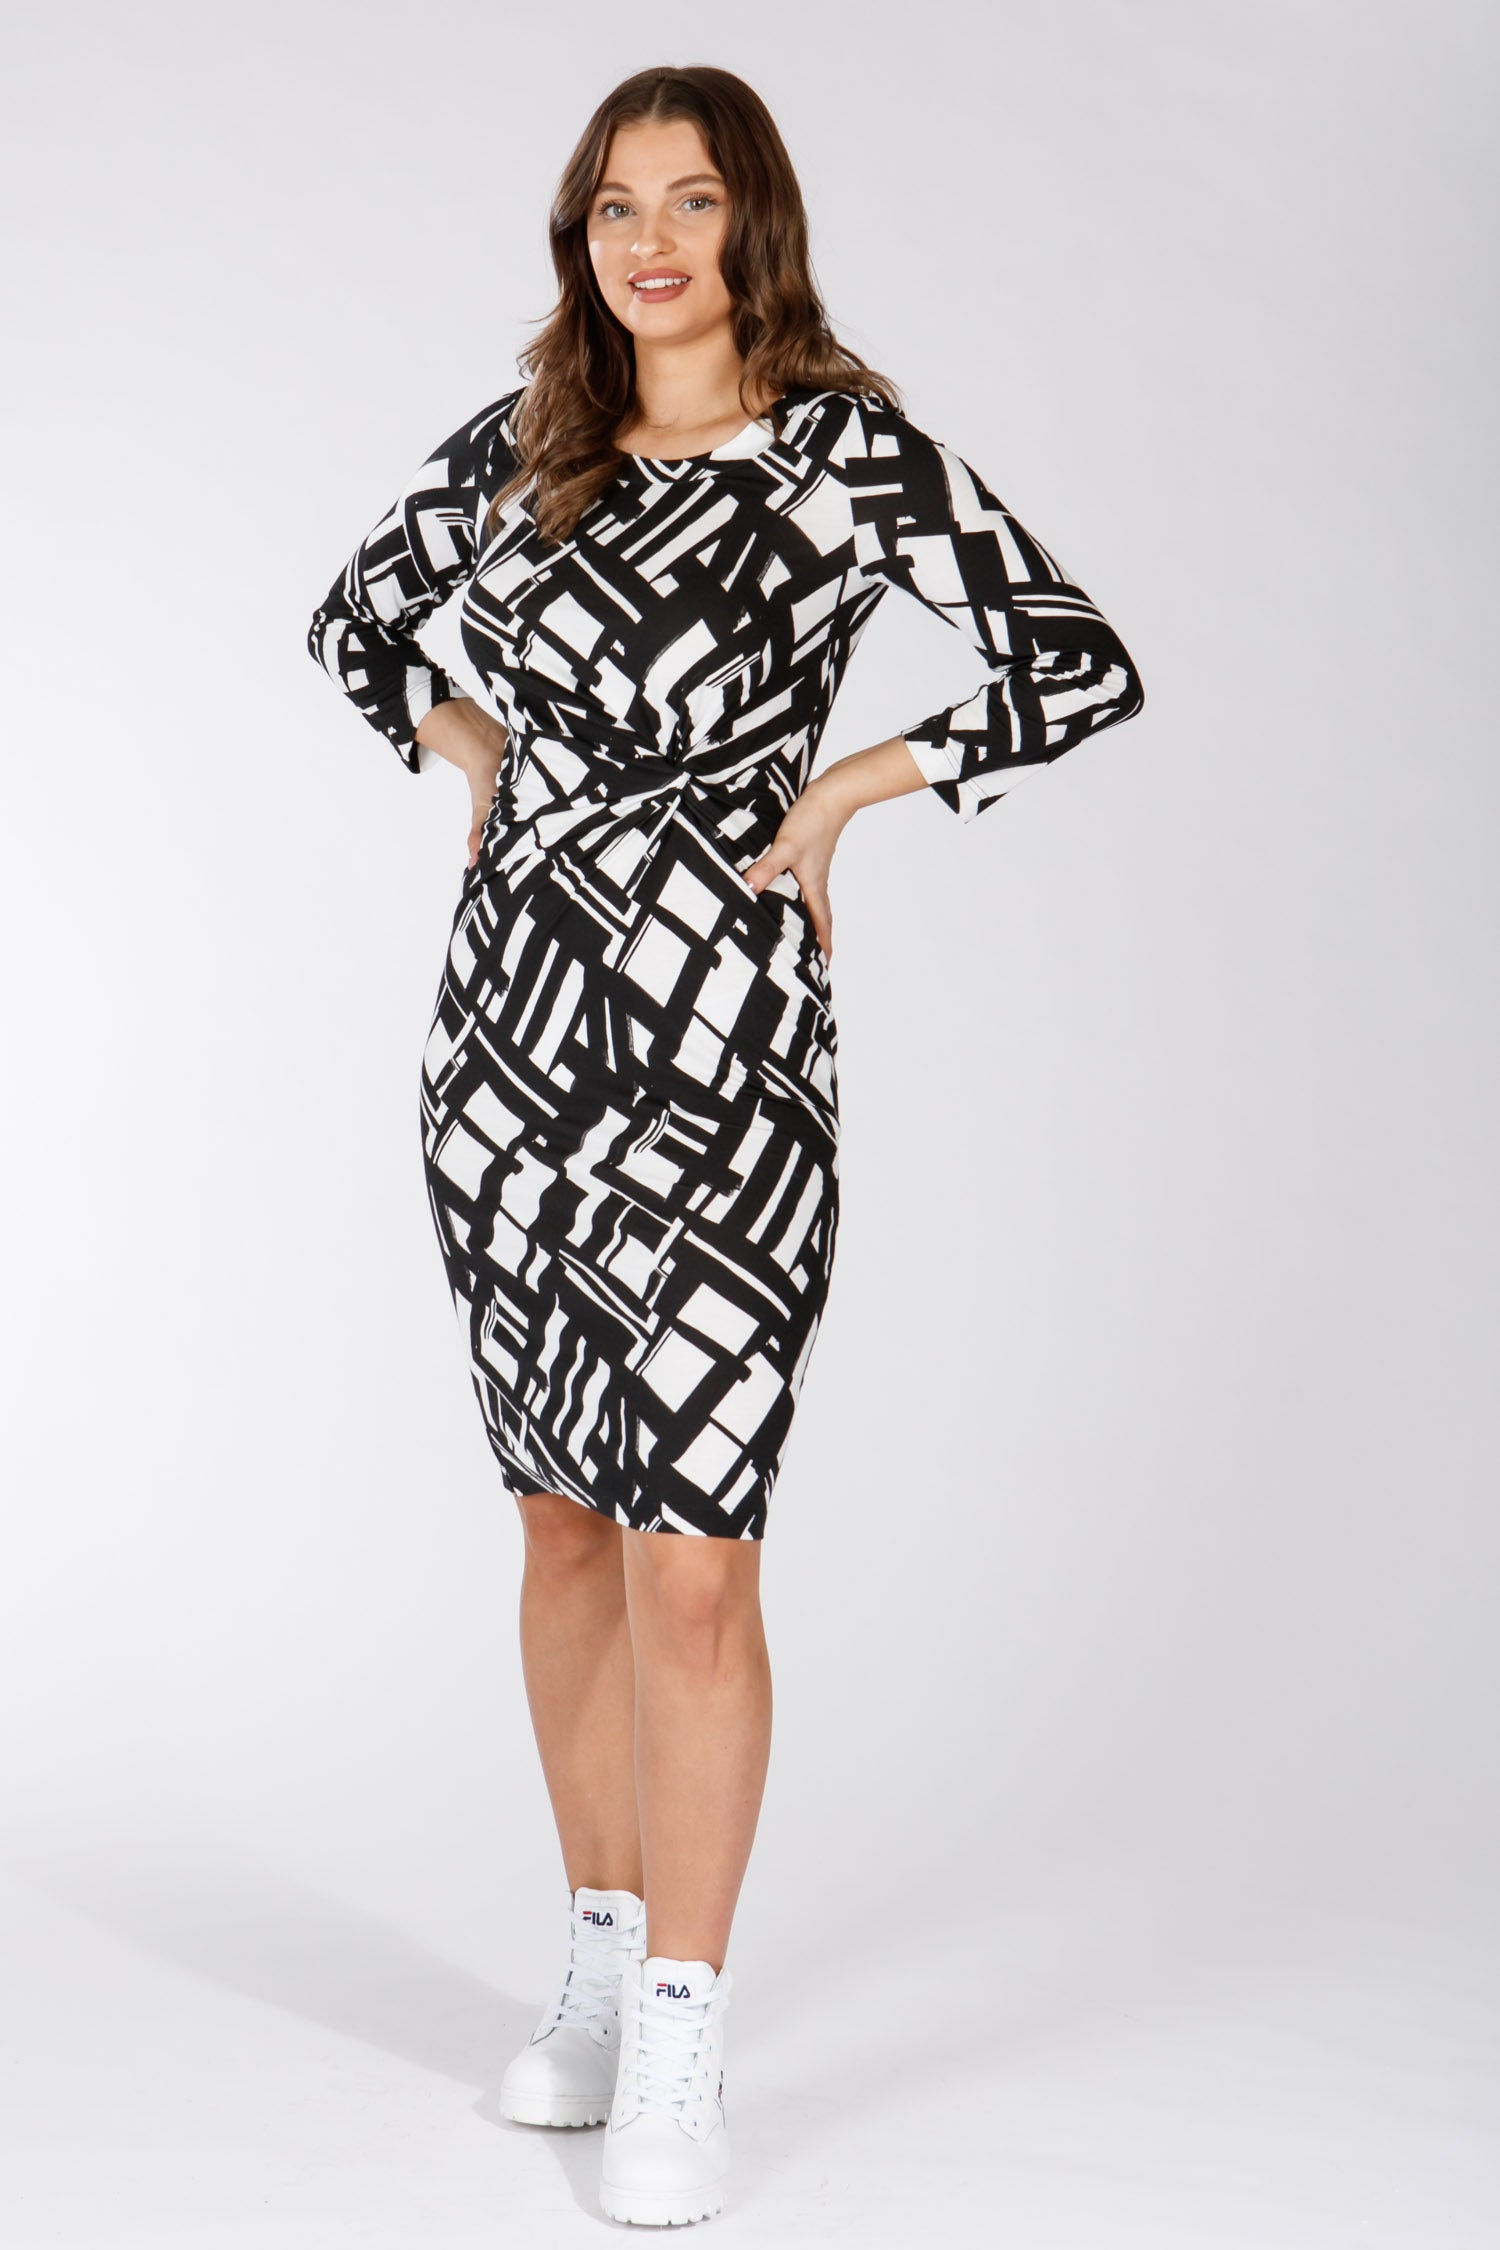 Gabrielle drape jersey dress - Black&White